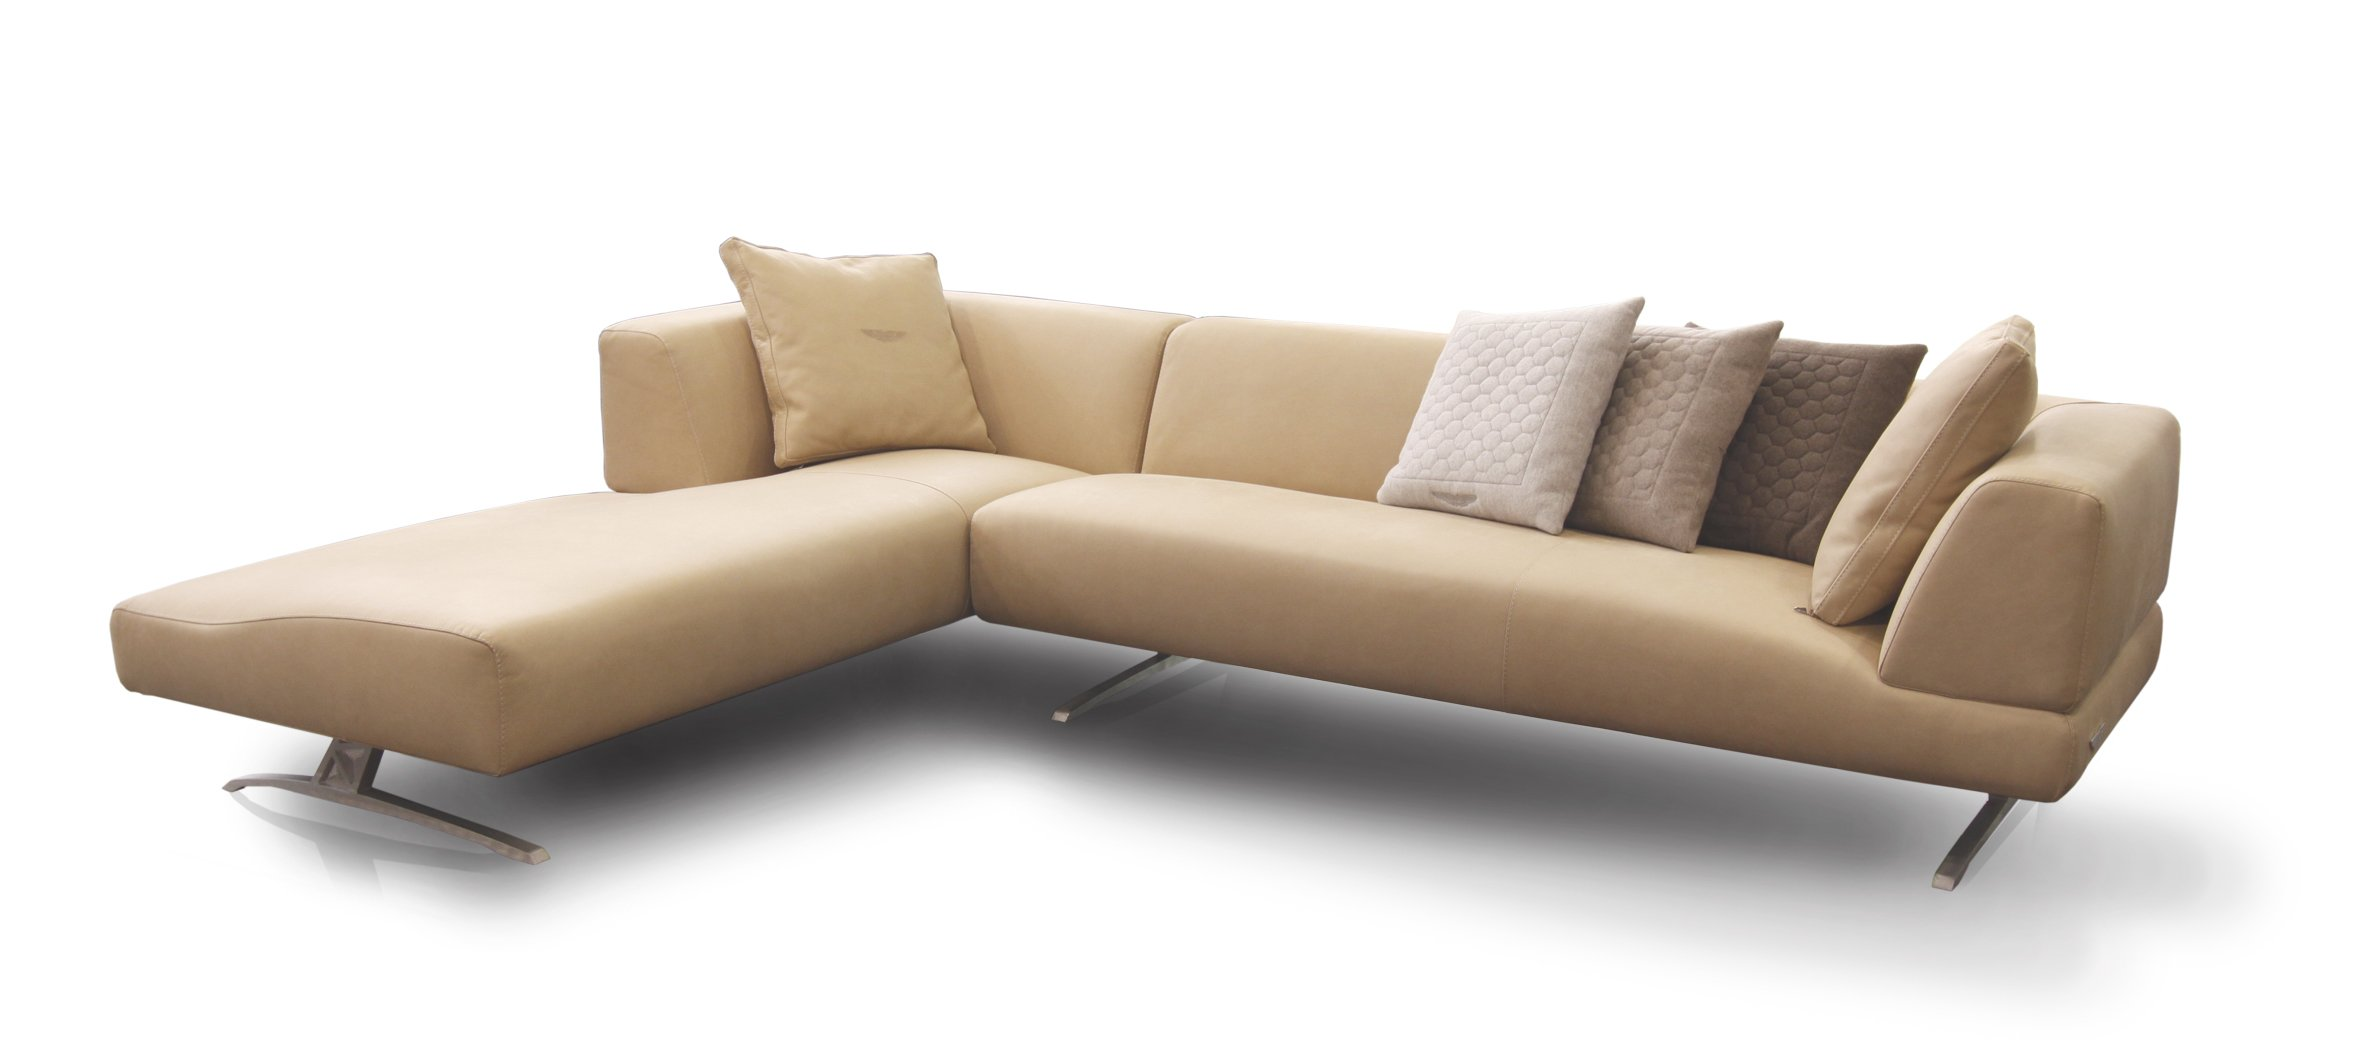 2013 Aston Martin Interiors Collection S Sofa And Bed